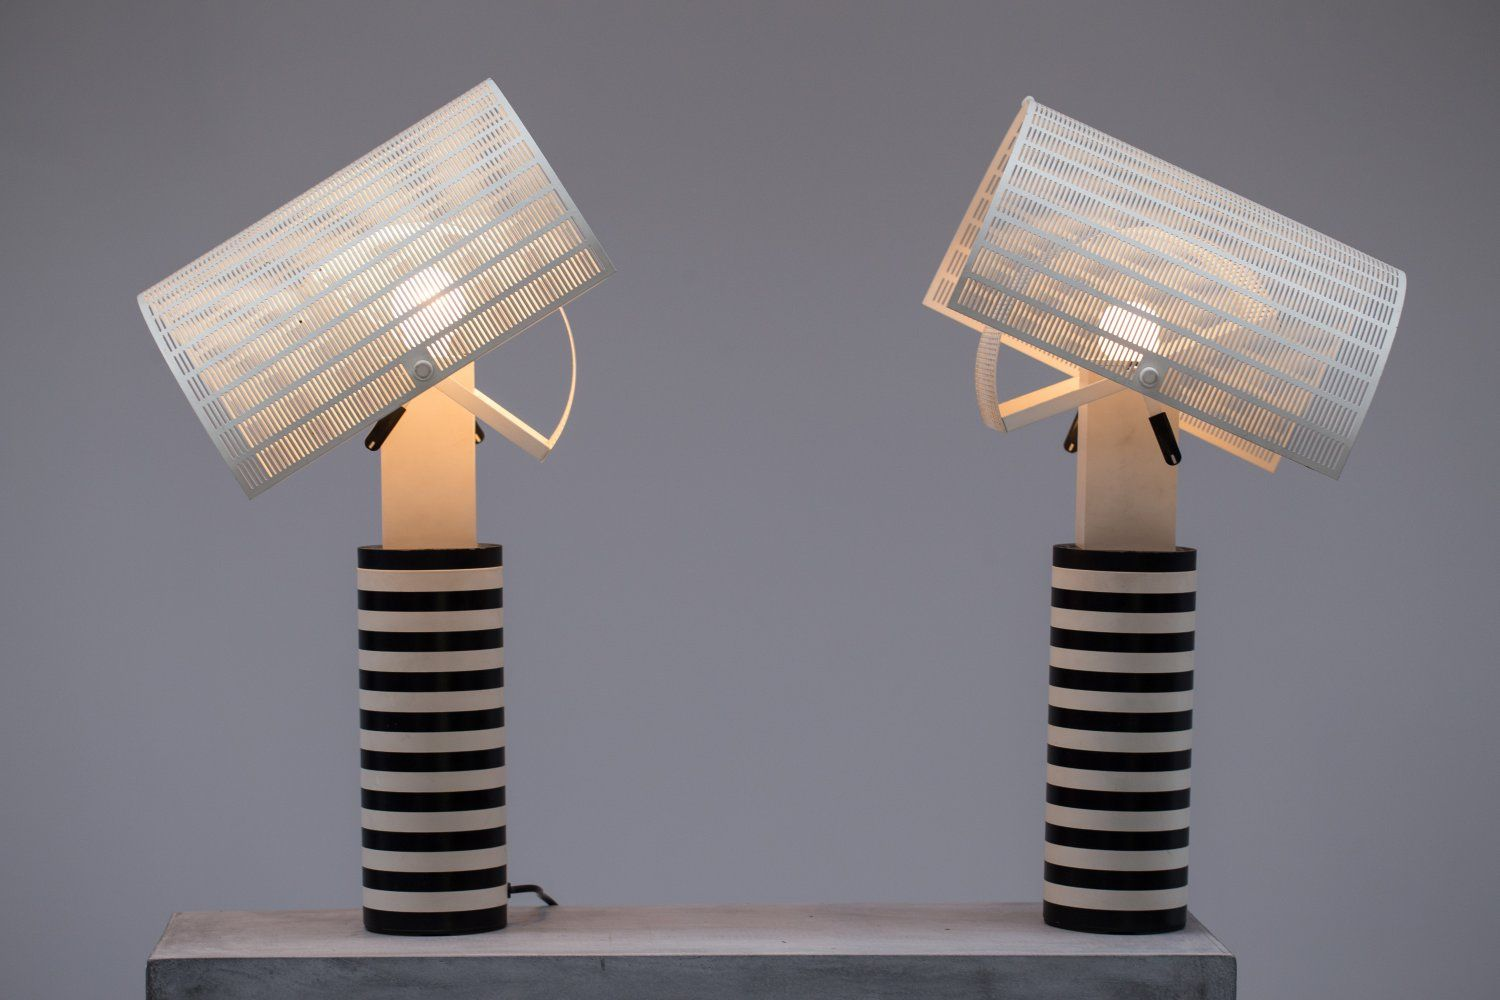 Pair of Shogun Table Lamps by Mario Botta | Lamp, Table lamp